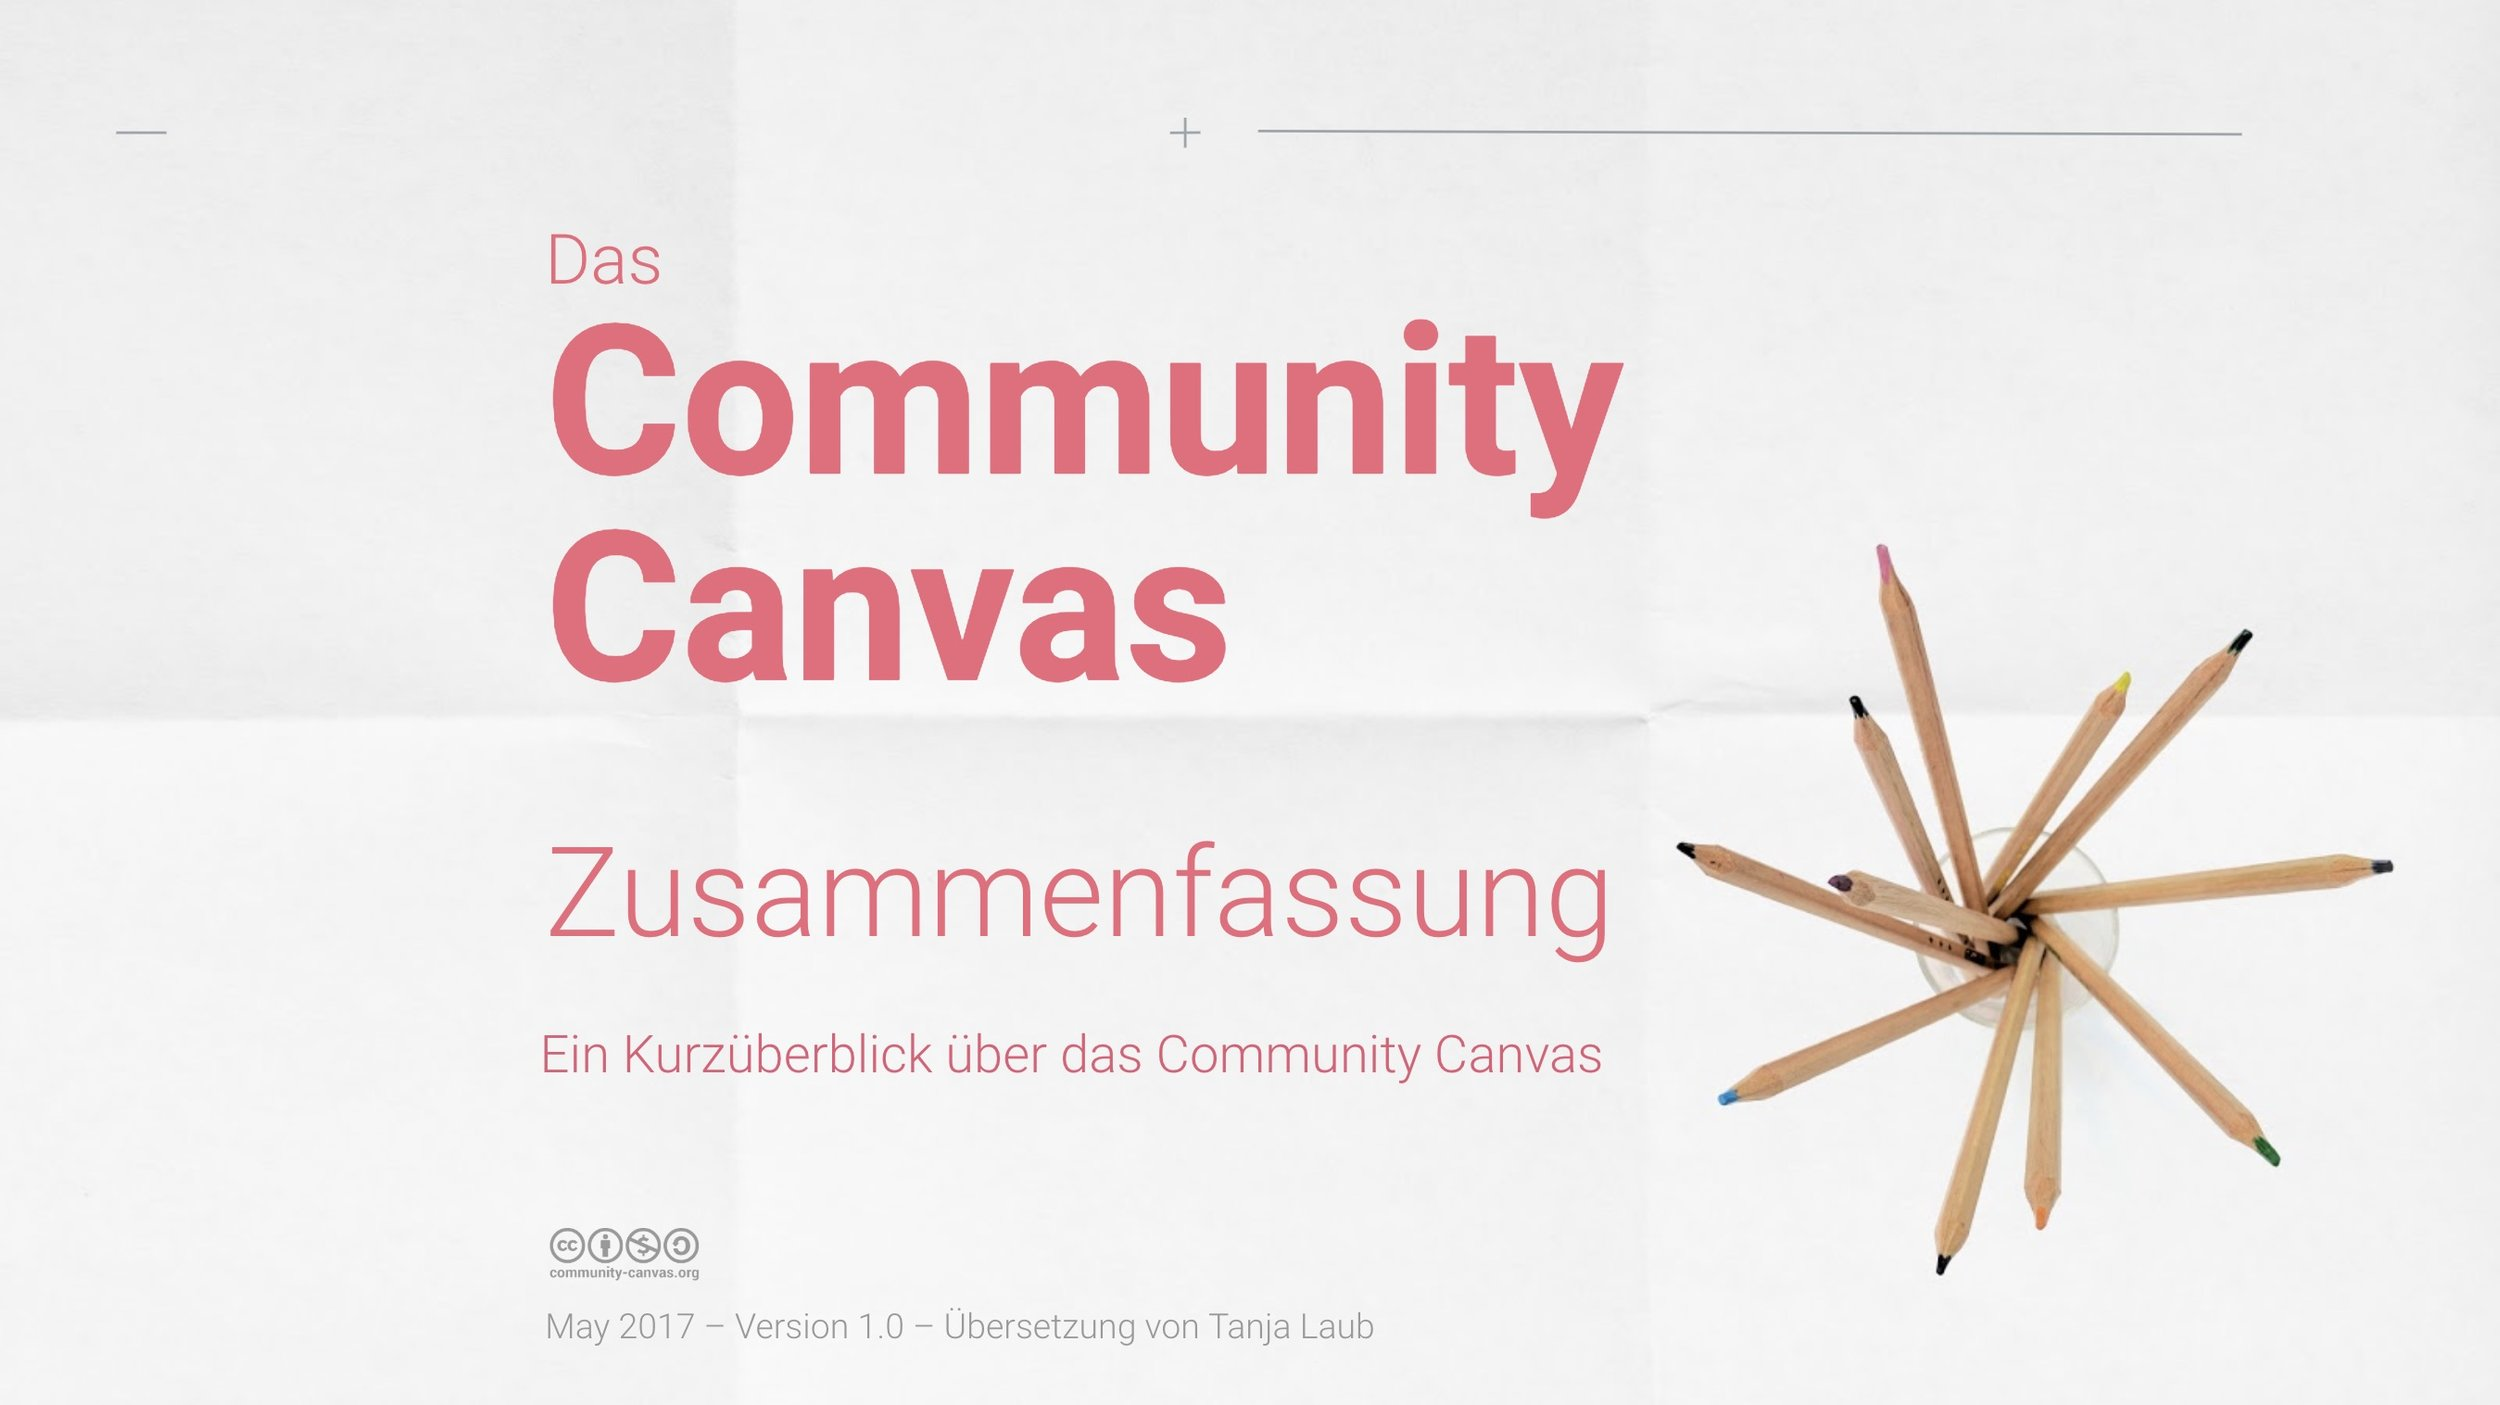 Community Canvas Summary German.jpg